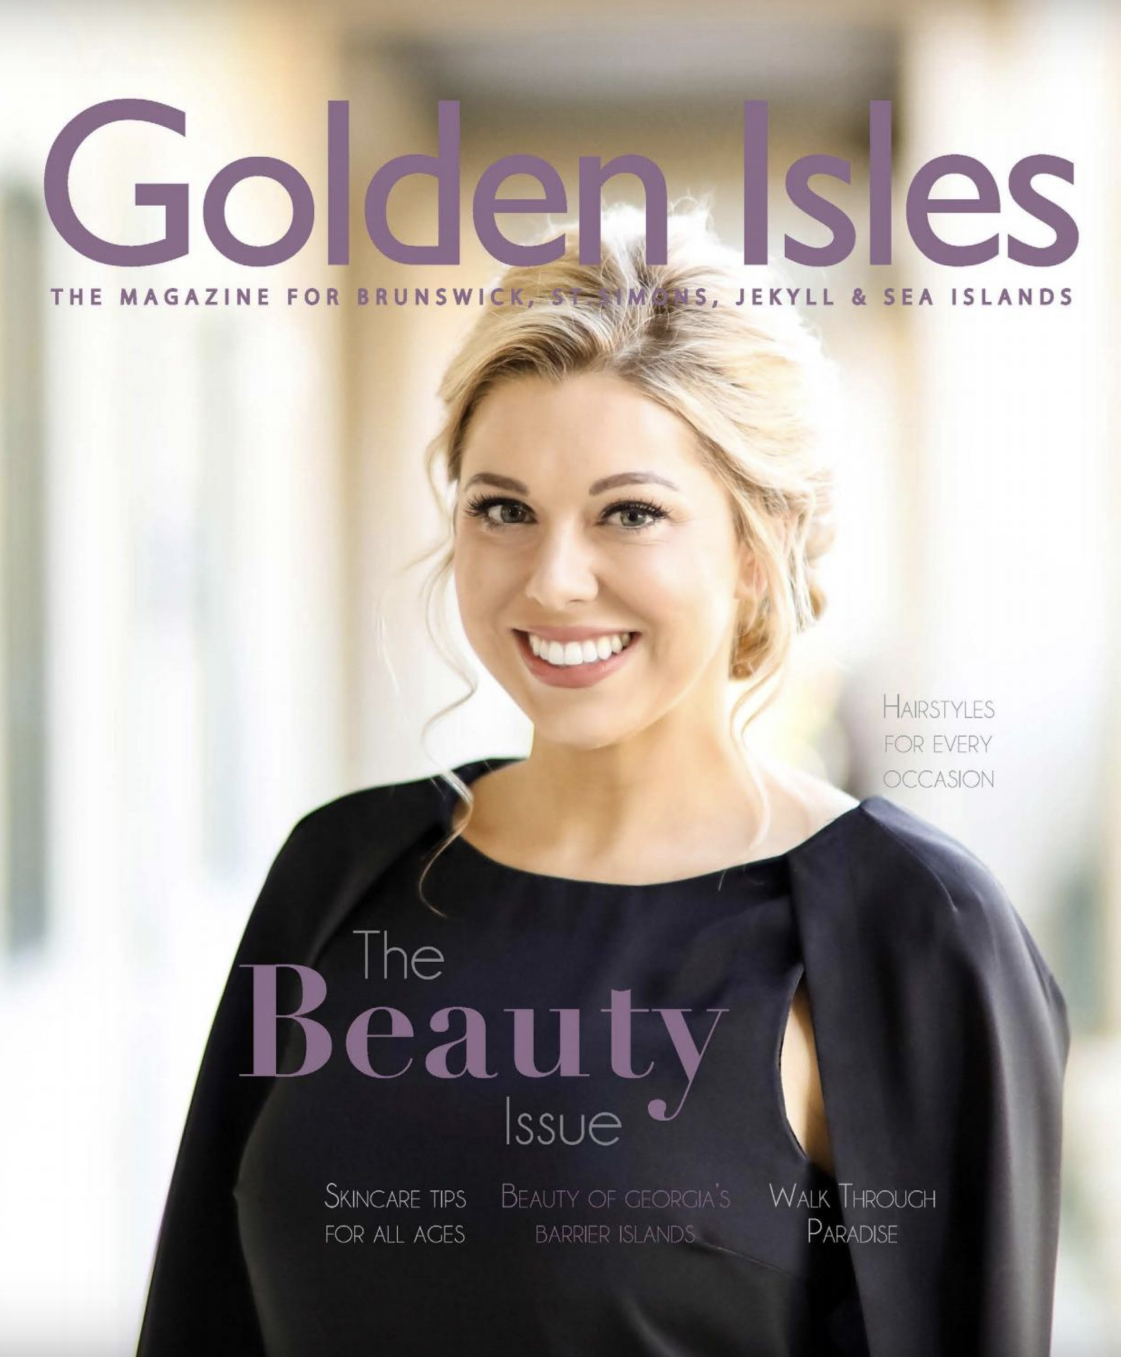 Golden Isles Magazine March/April 2018 Issue Cover